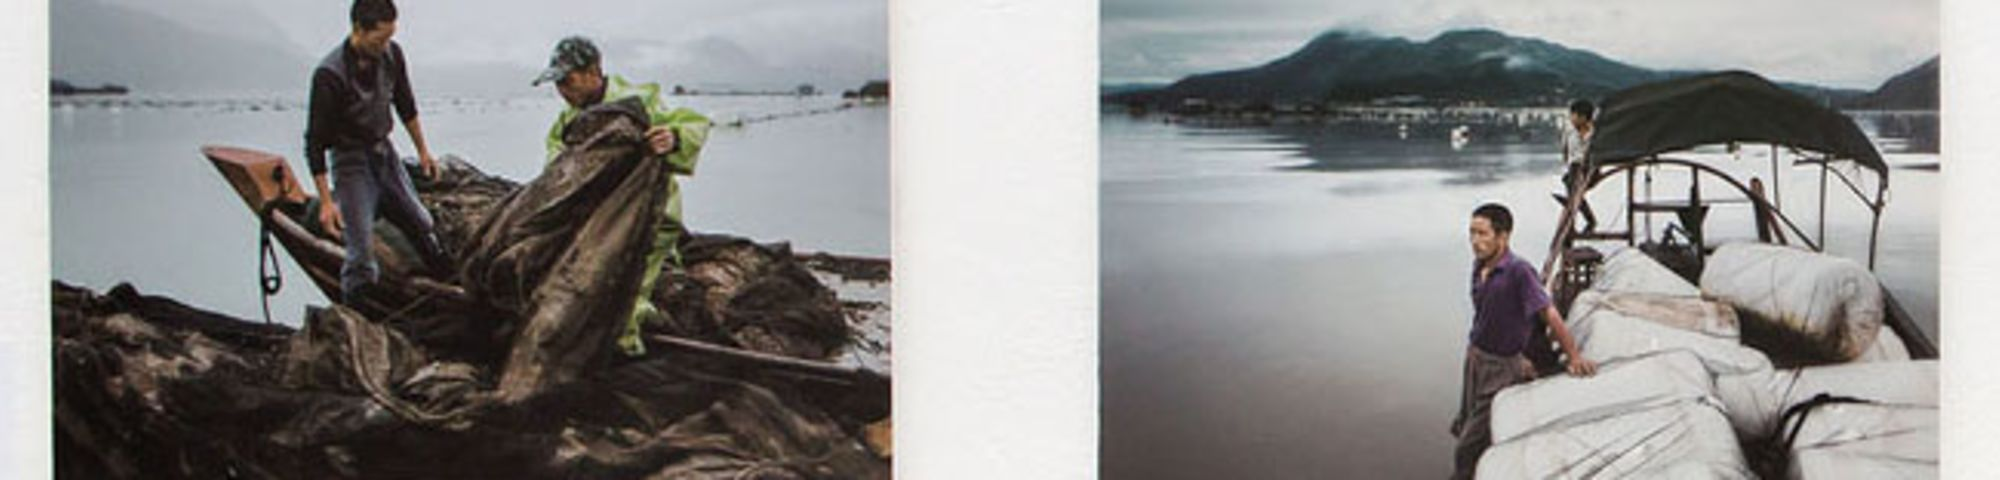 Two photos of seaside scenes next to each other